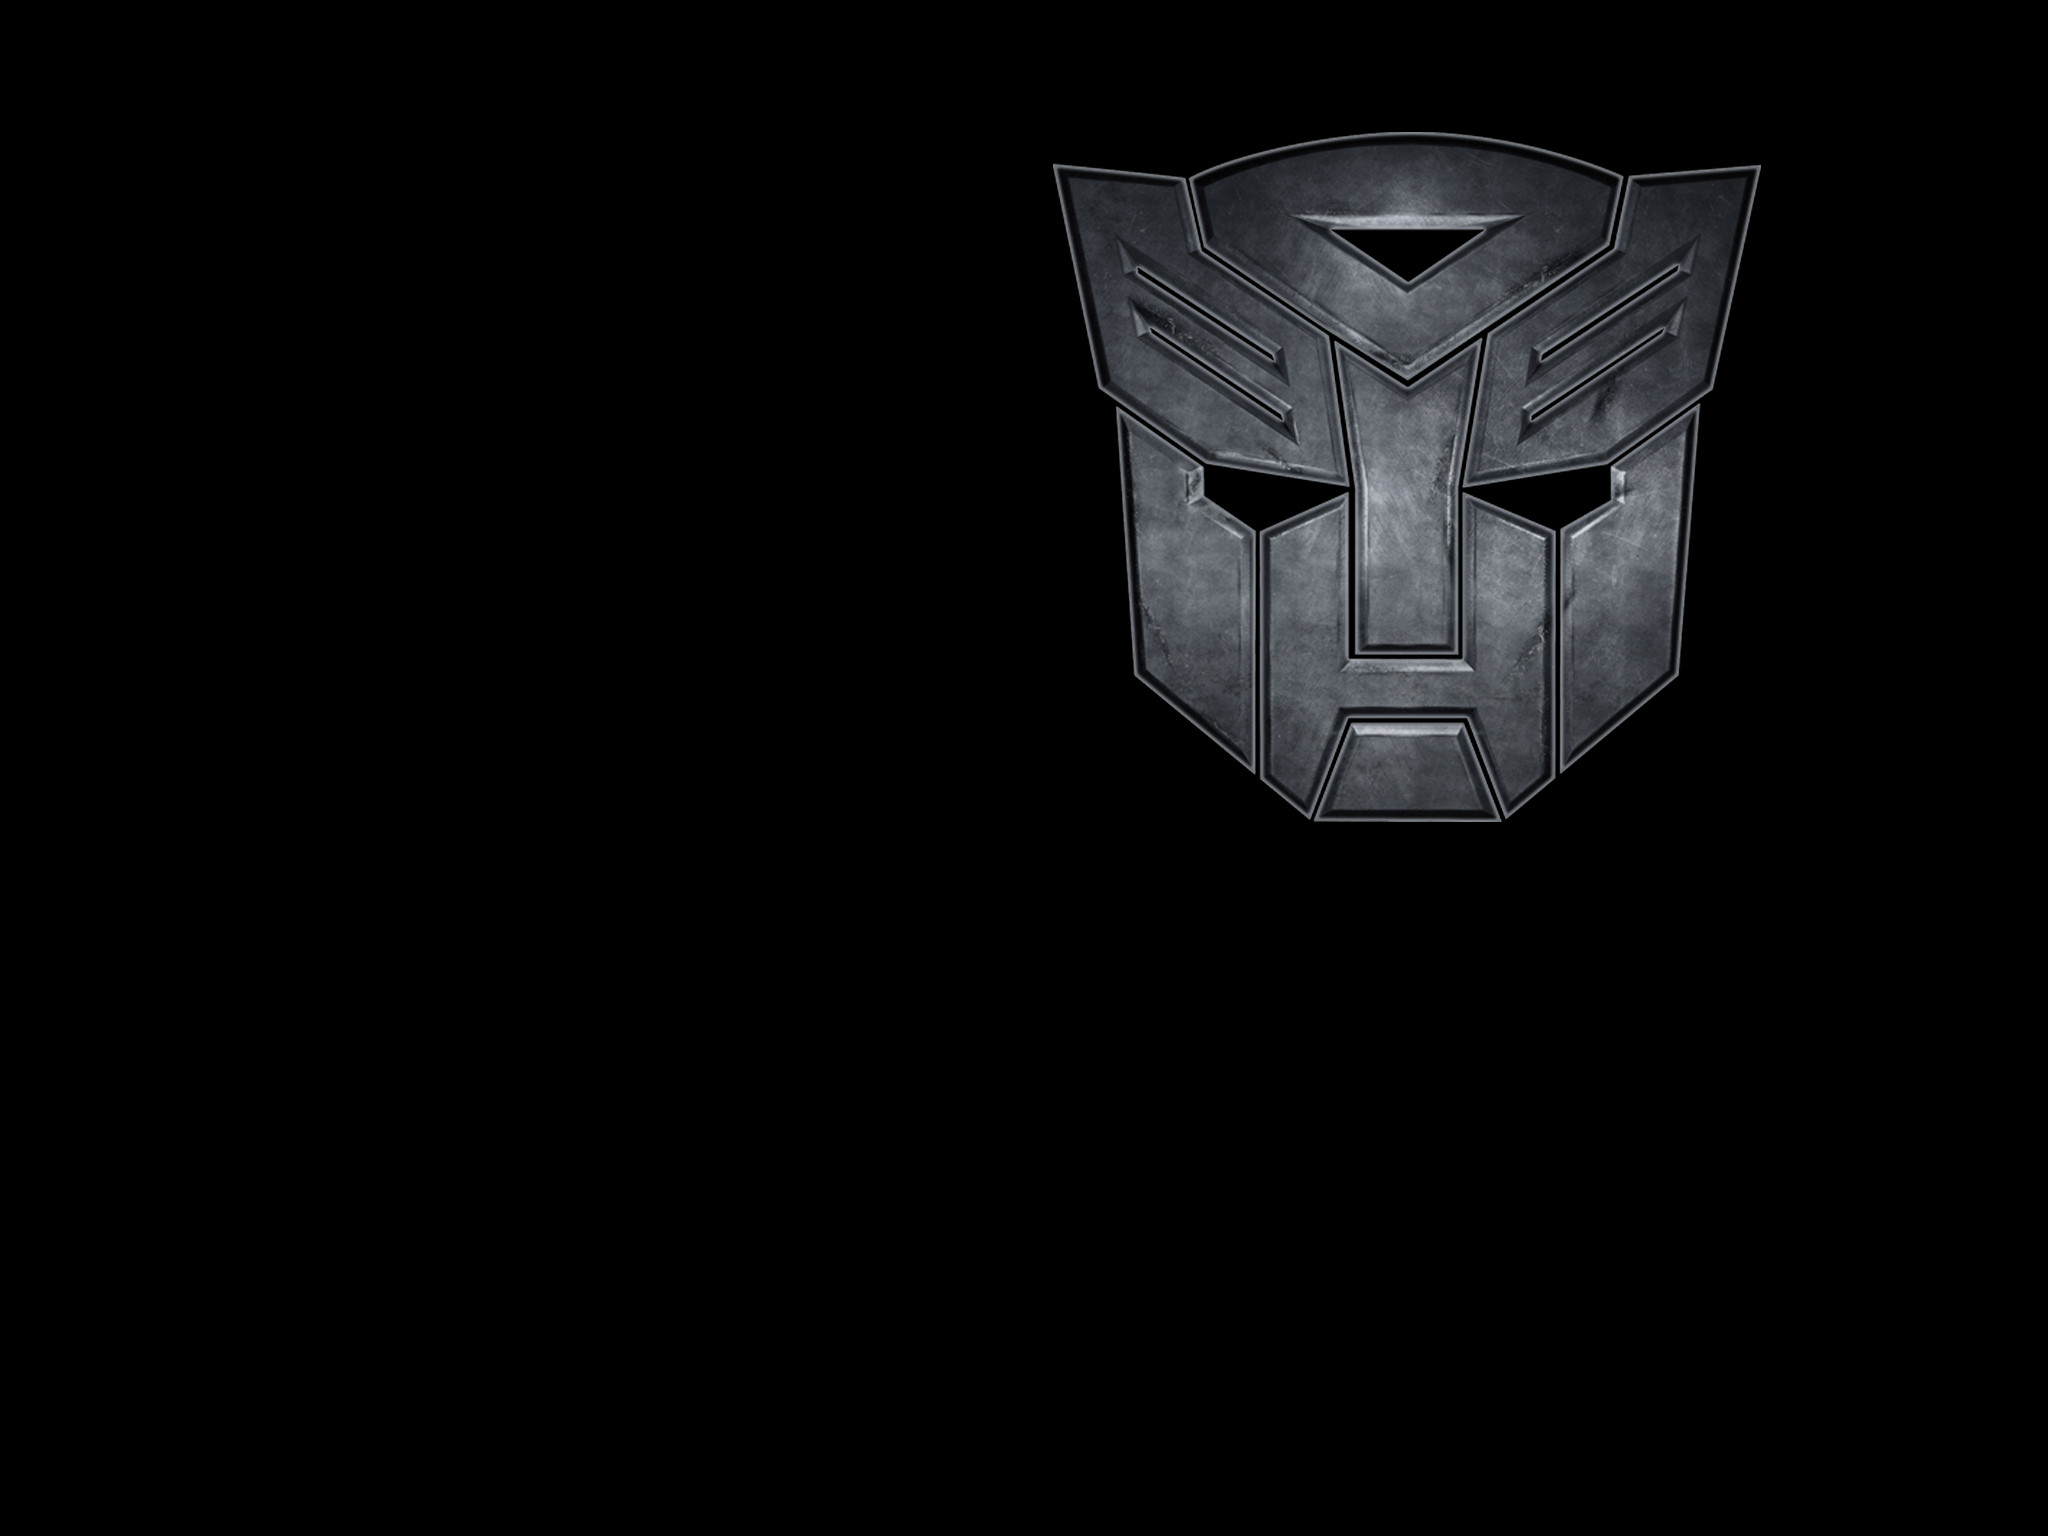 2048x1536 Transformers Autobots Wallpaper for Android